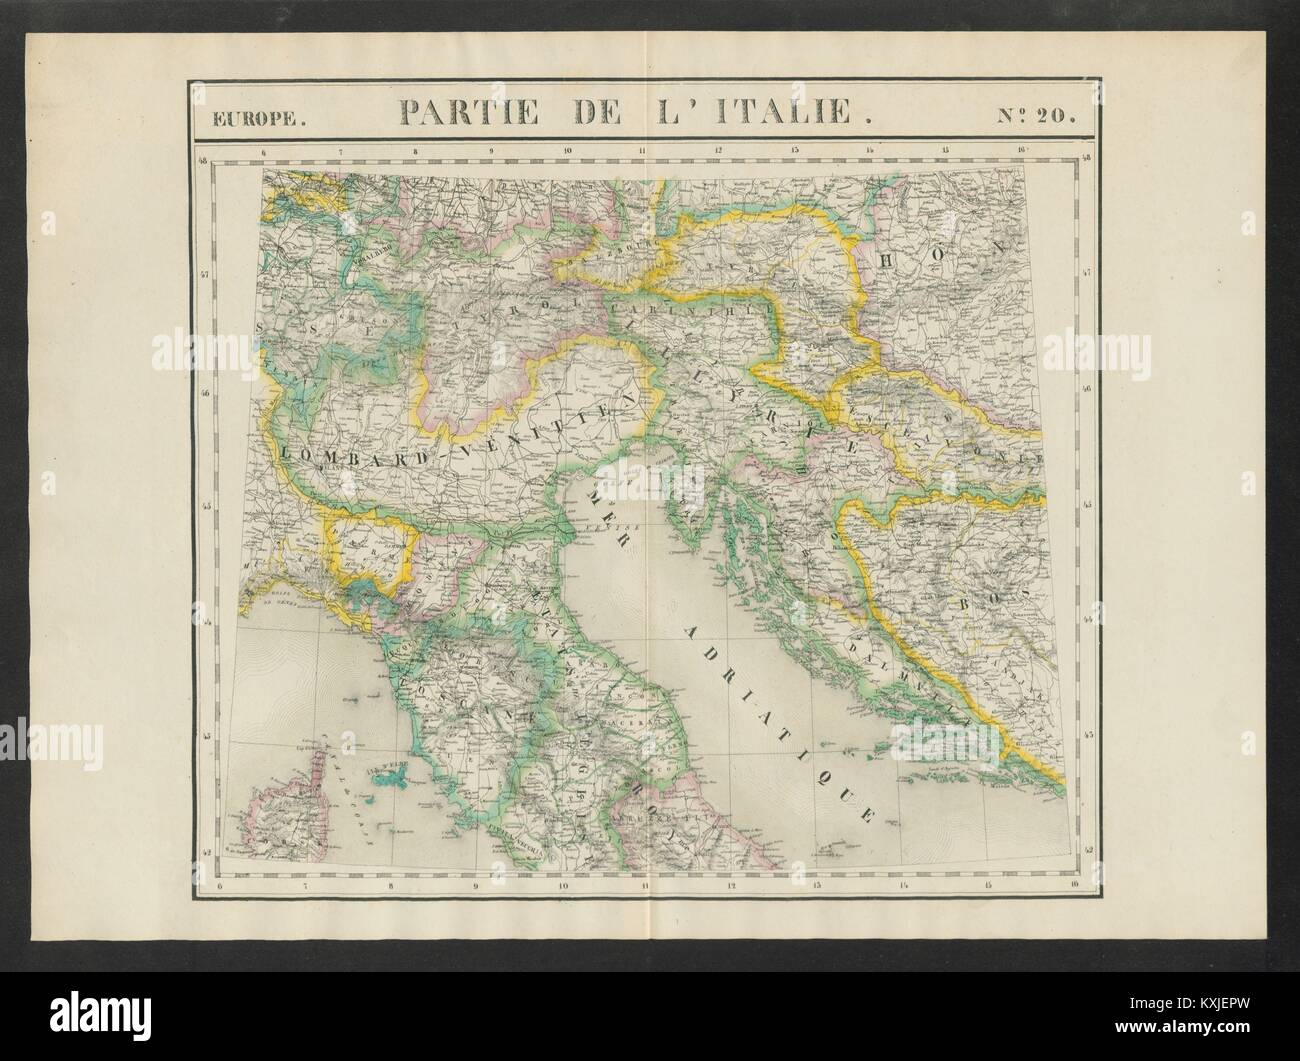 Map maps europe italy croatia stock photos map maps europe italy partie de litalie 20 n italy switzerland croatia vandermaelen 1827 gumiabroncs Images